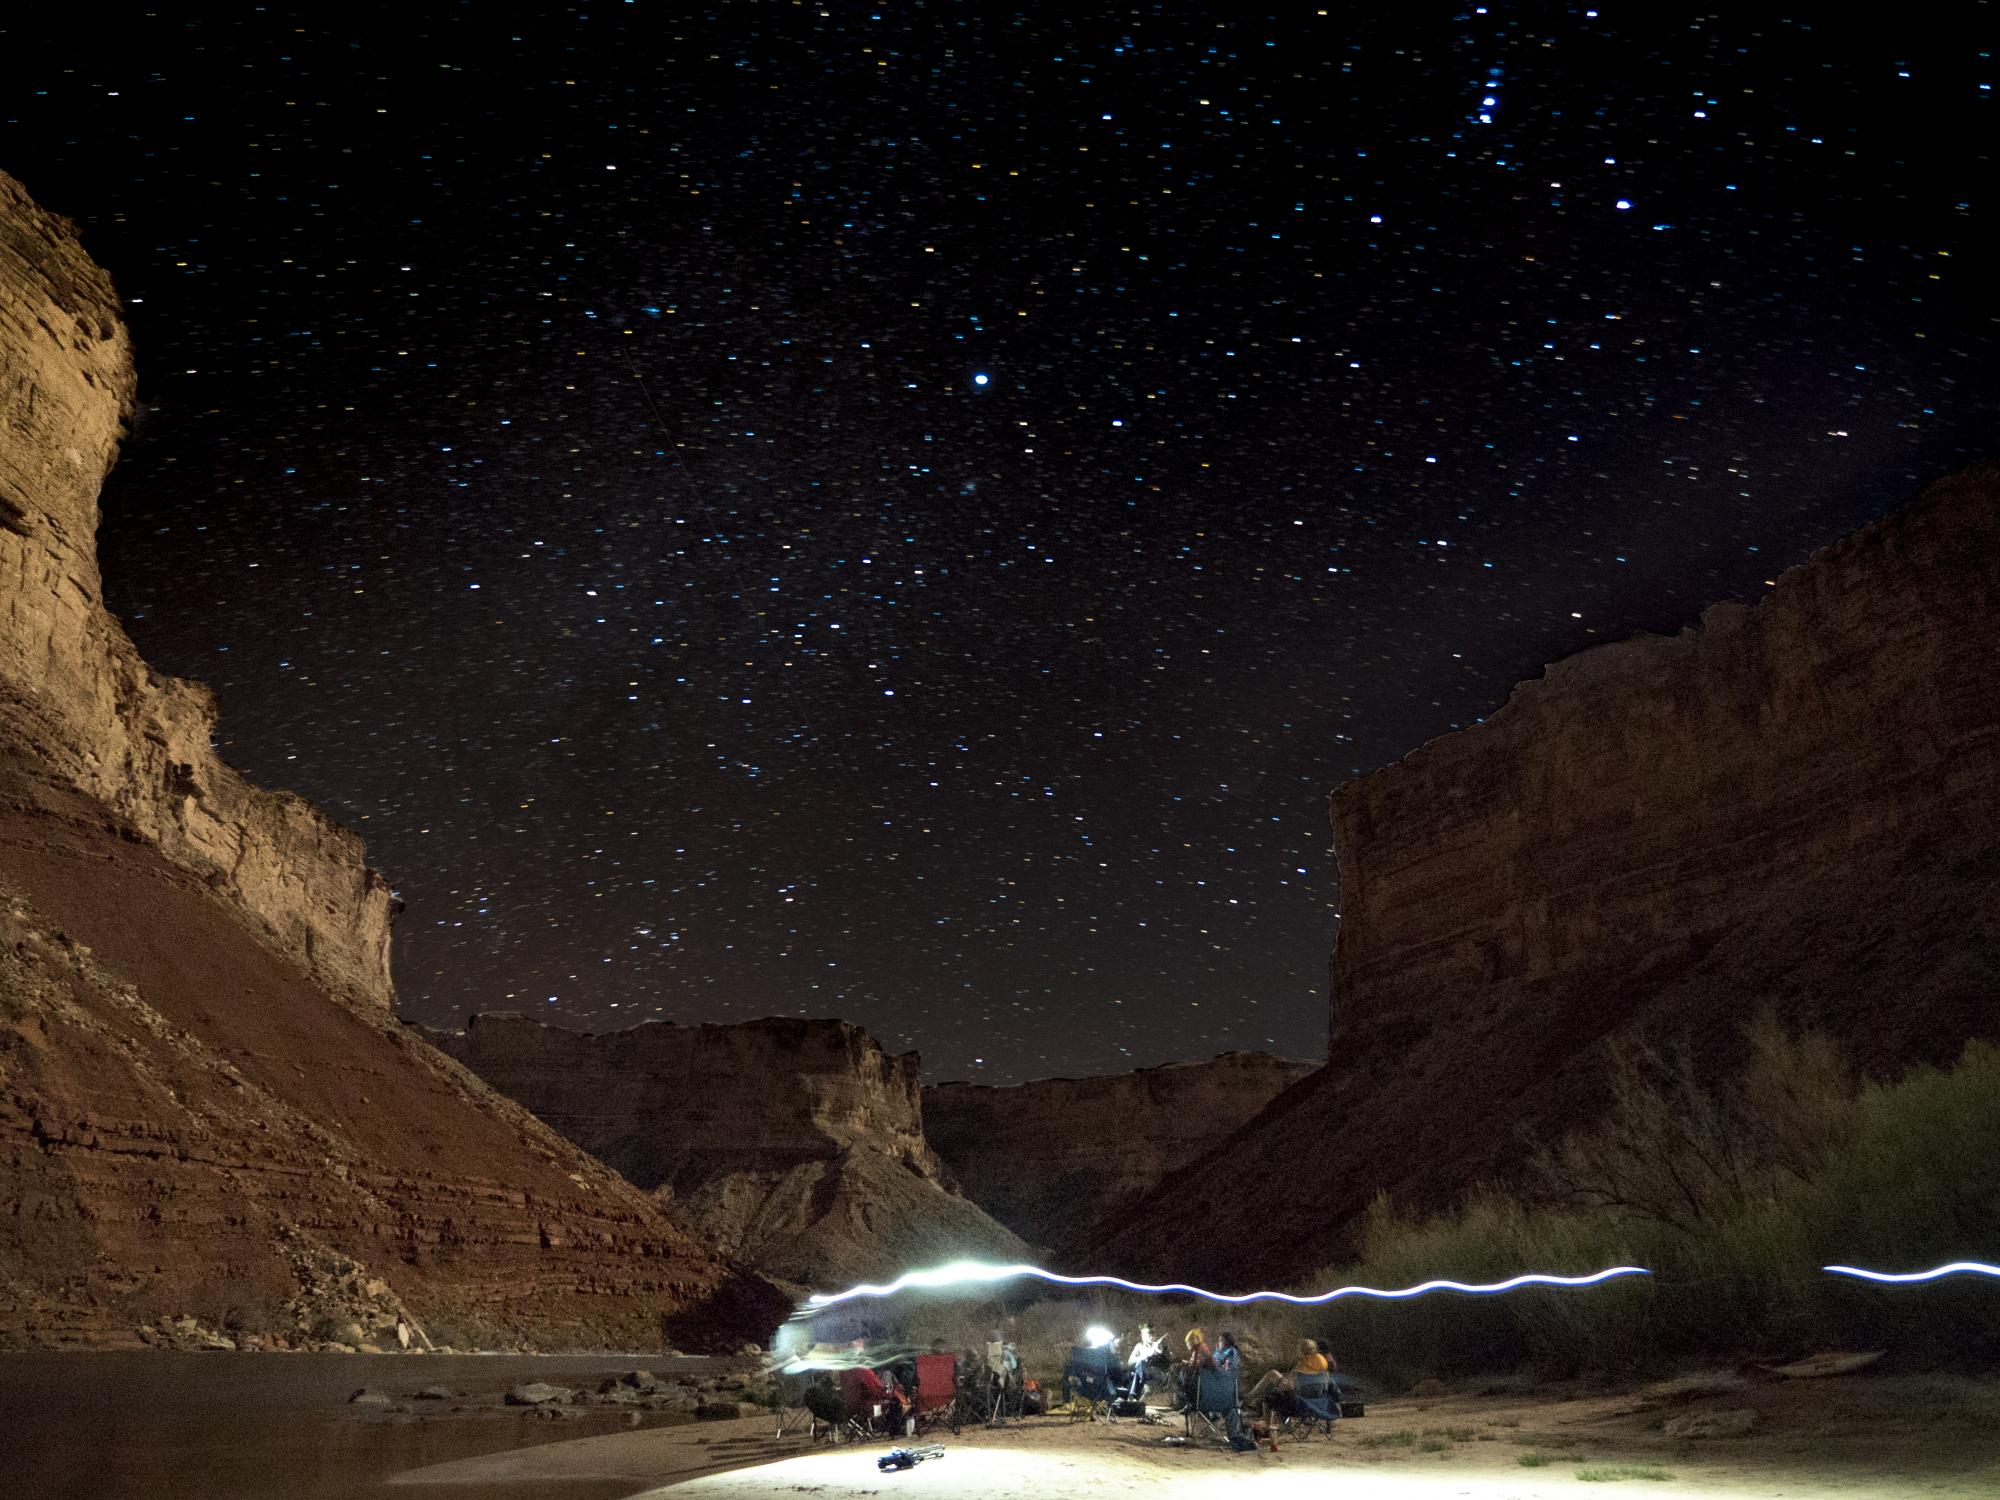 Night sky of stars at the Grand Canyon